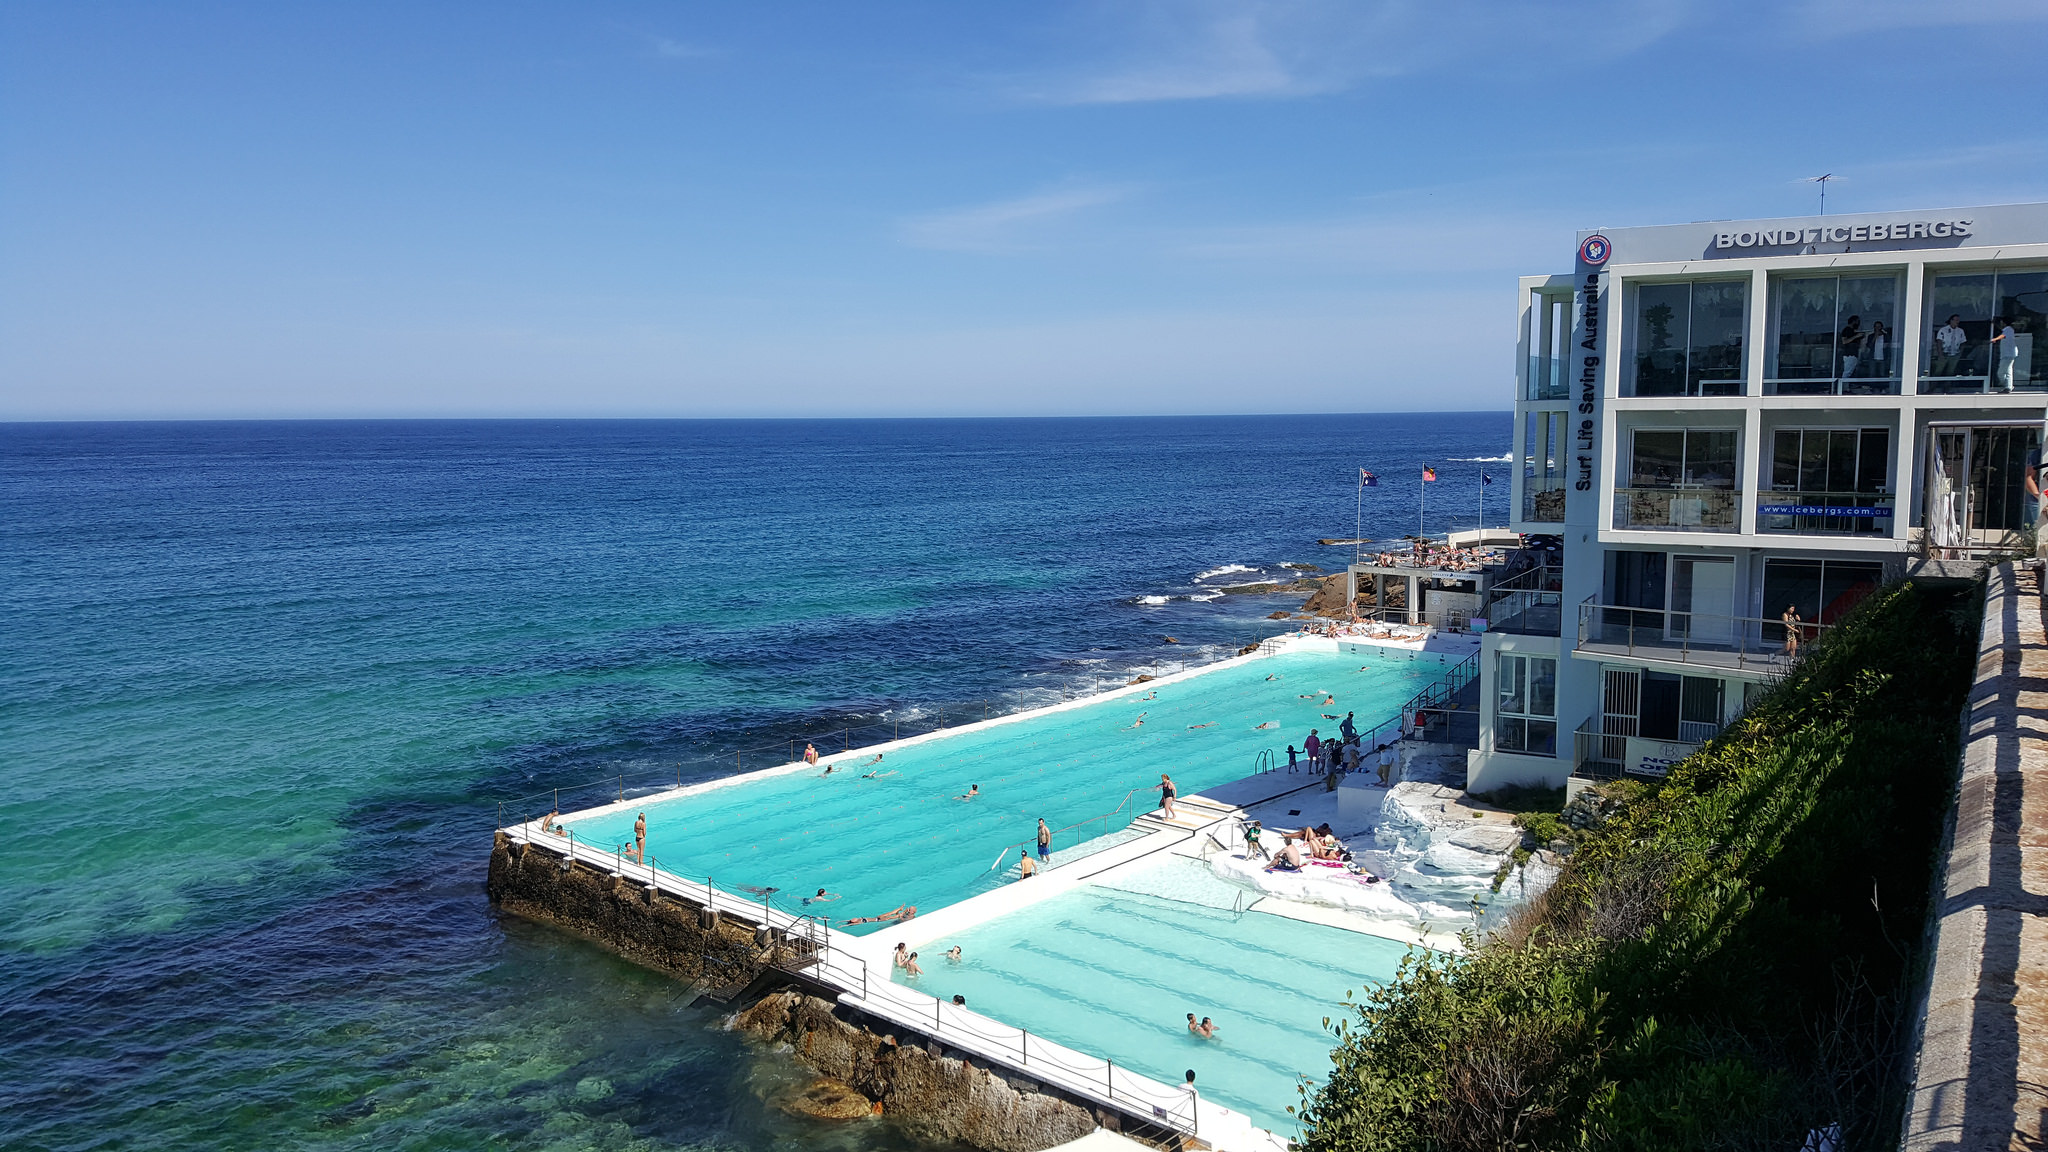 . The Best Places For Waterfront Dining In Sydney